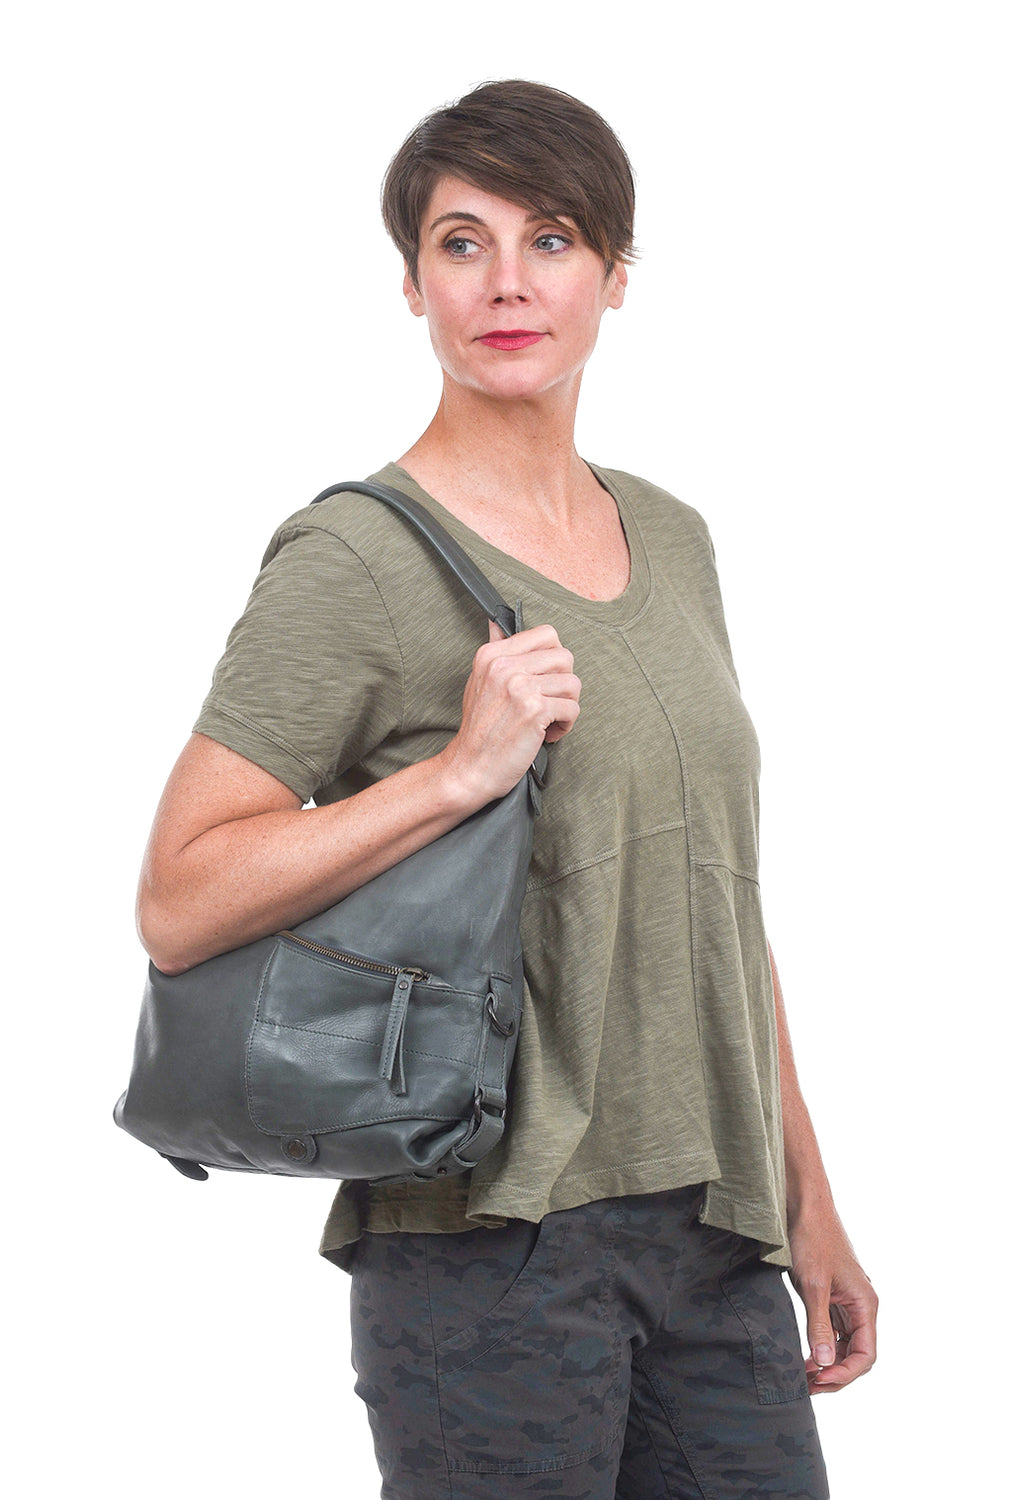 Aunts & Uncles June Weird Handbag, Urban Chic Green Green